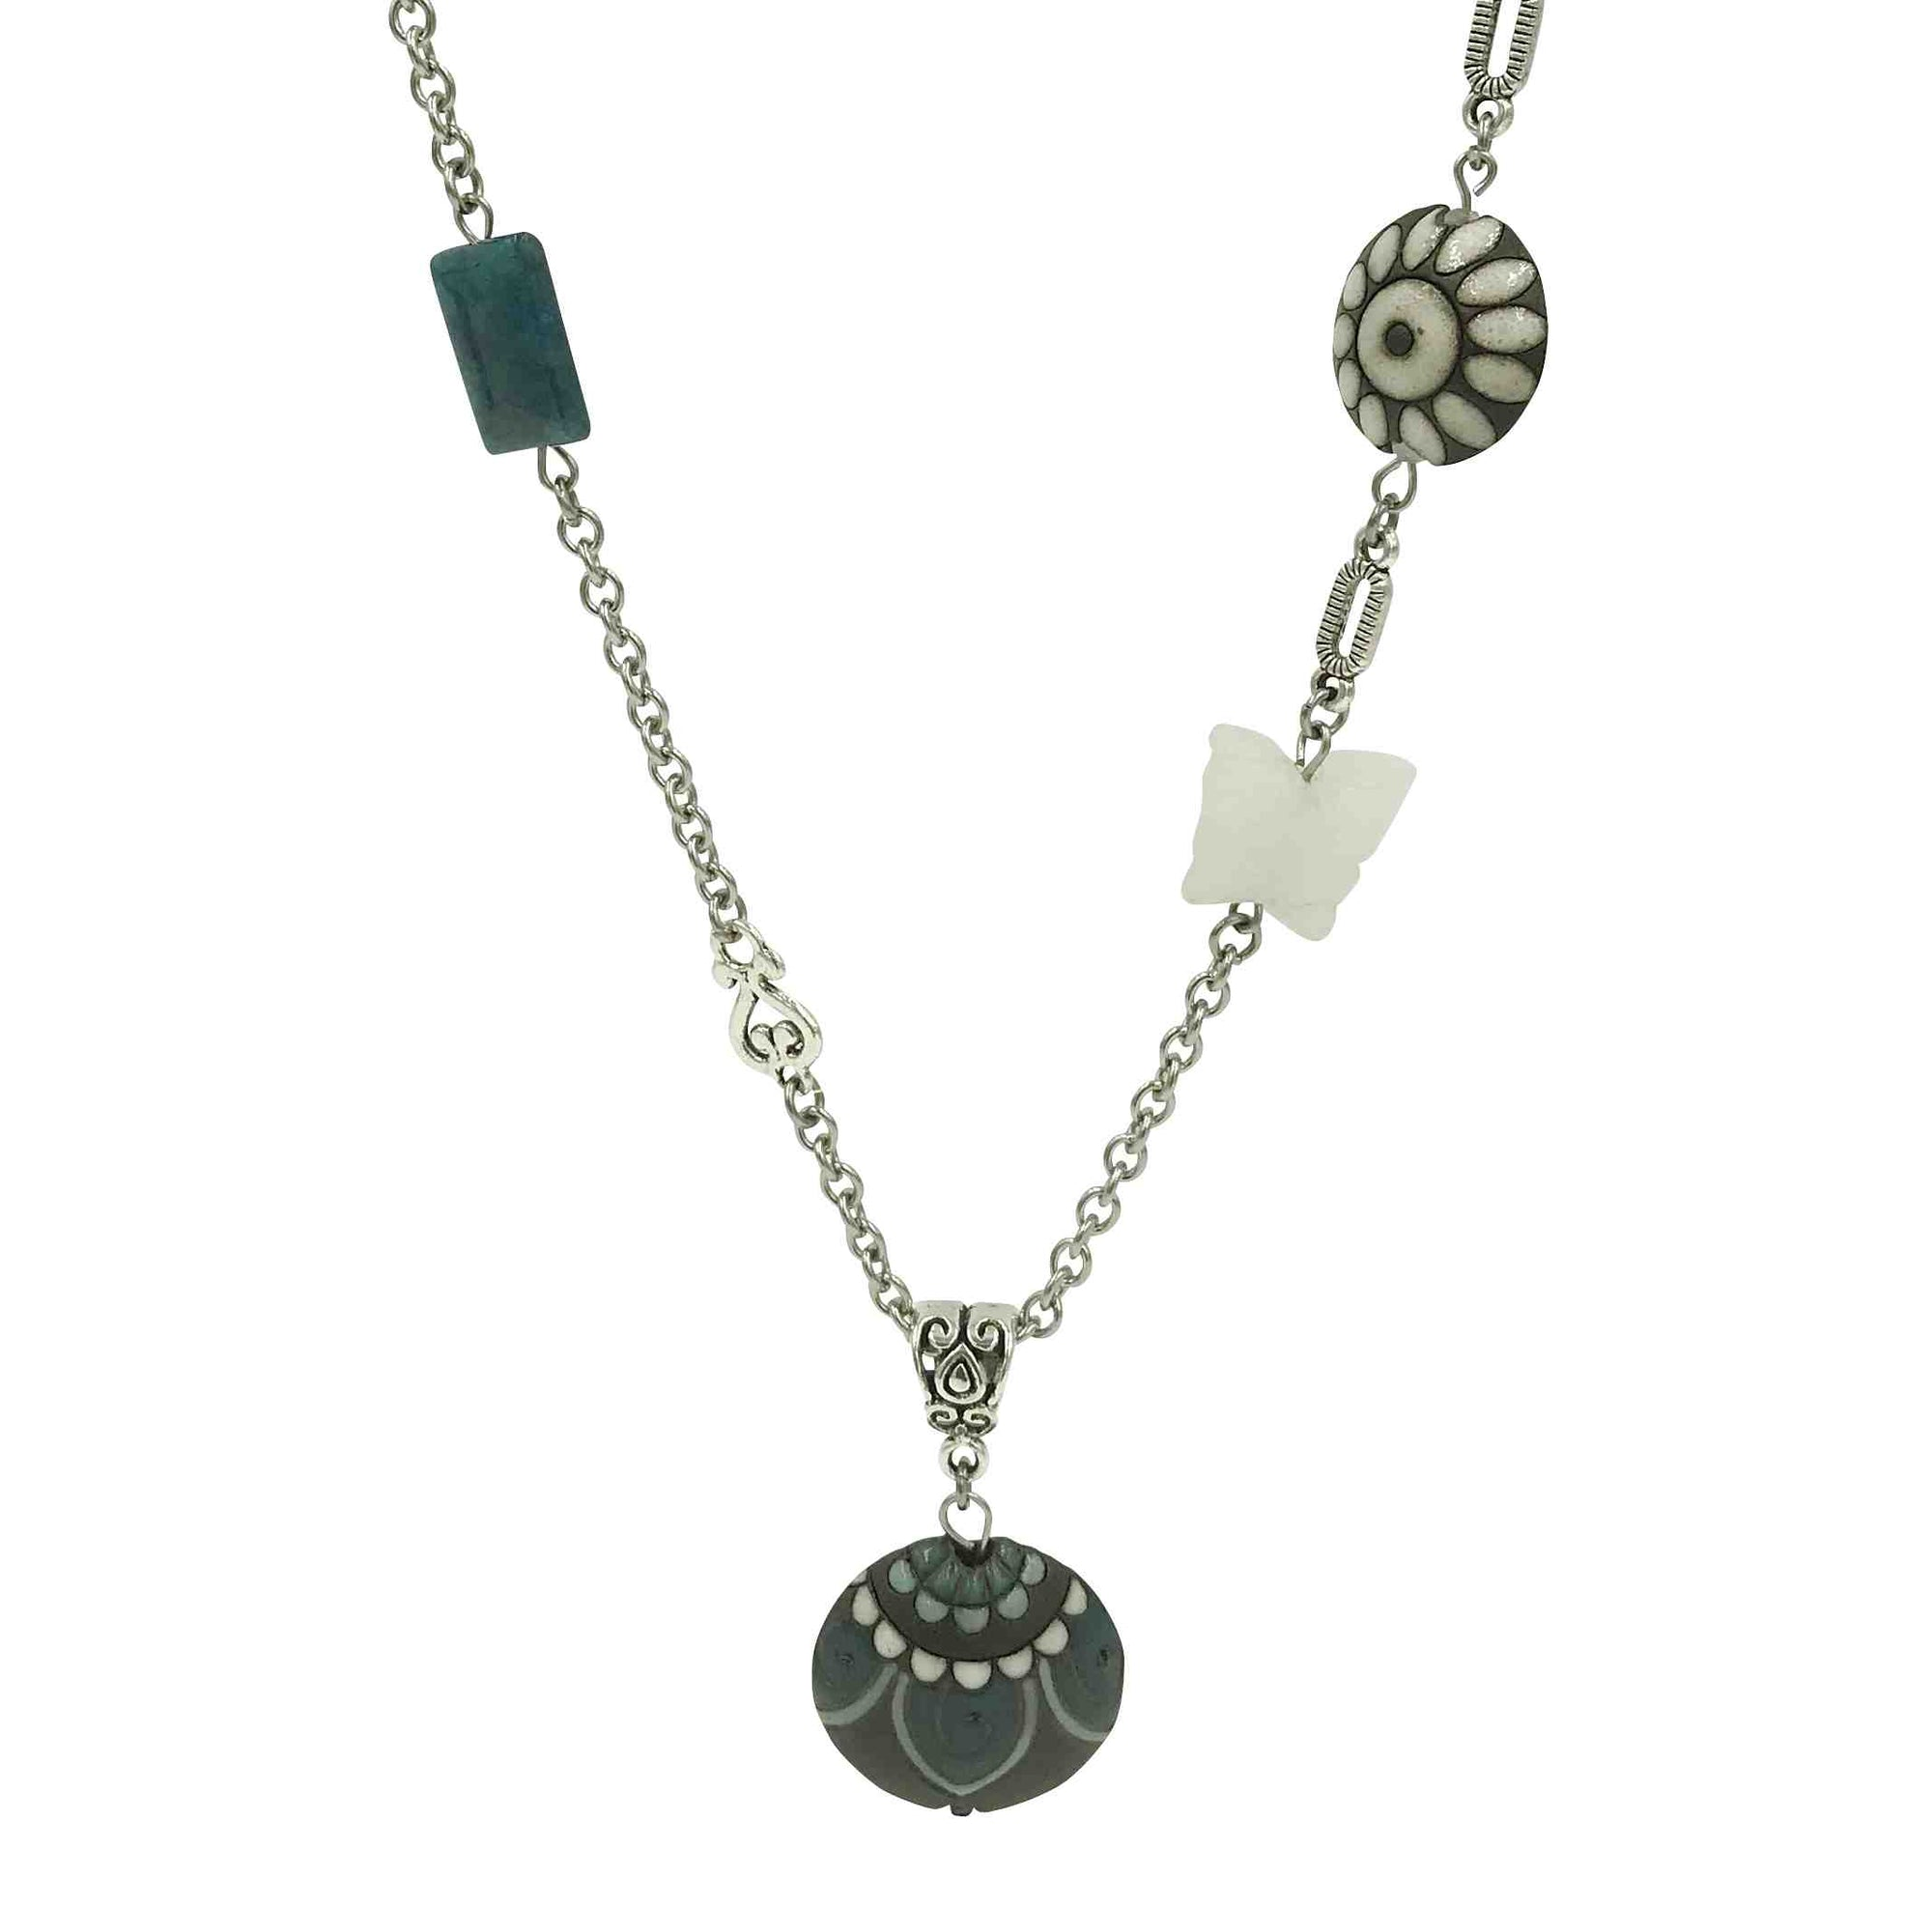 Round Pendant Necklace with Stainless Steel Chain-Necklaces- Creative Jewelry by Marcia